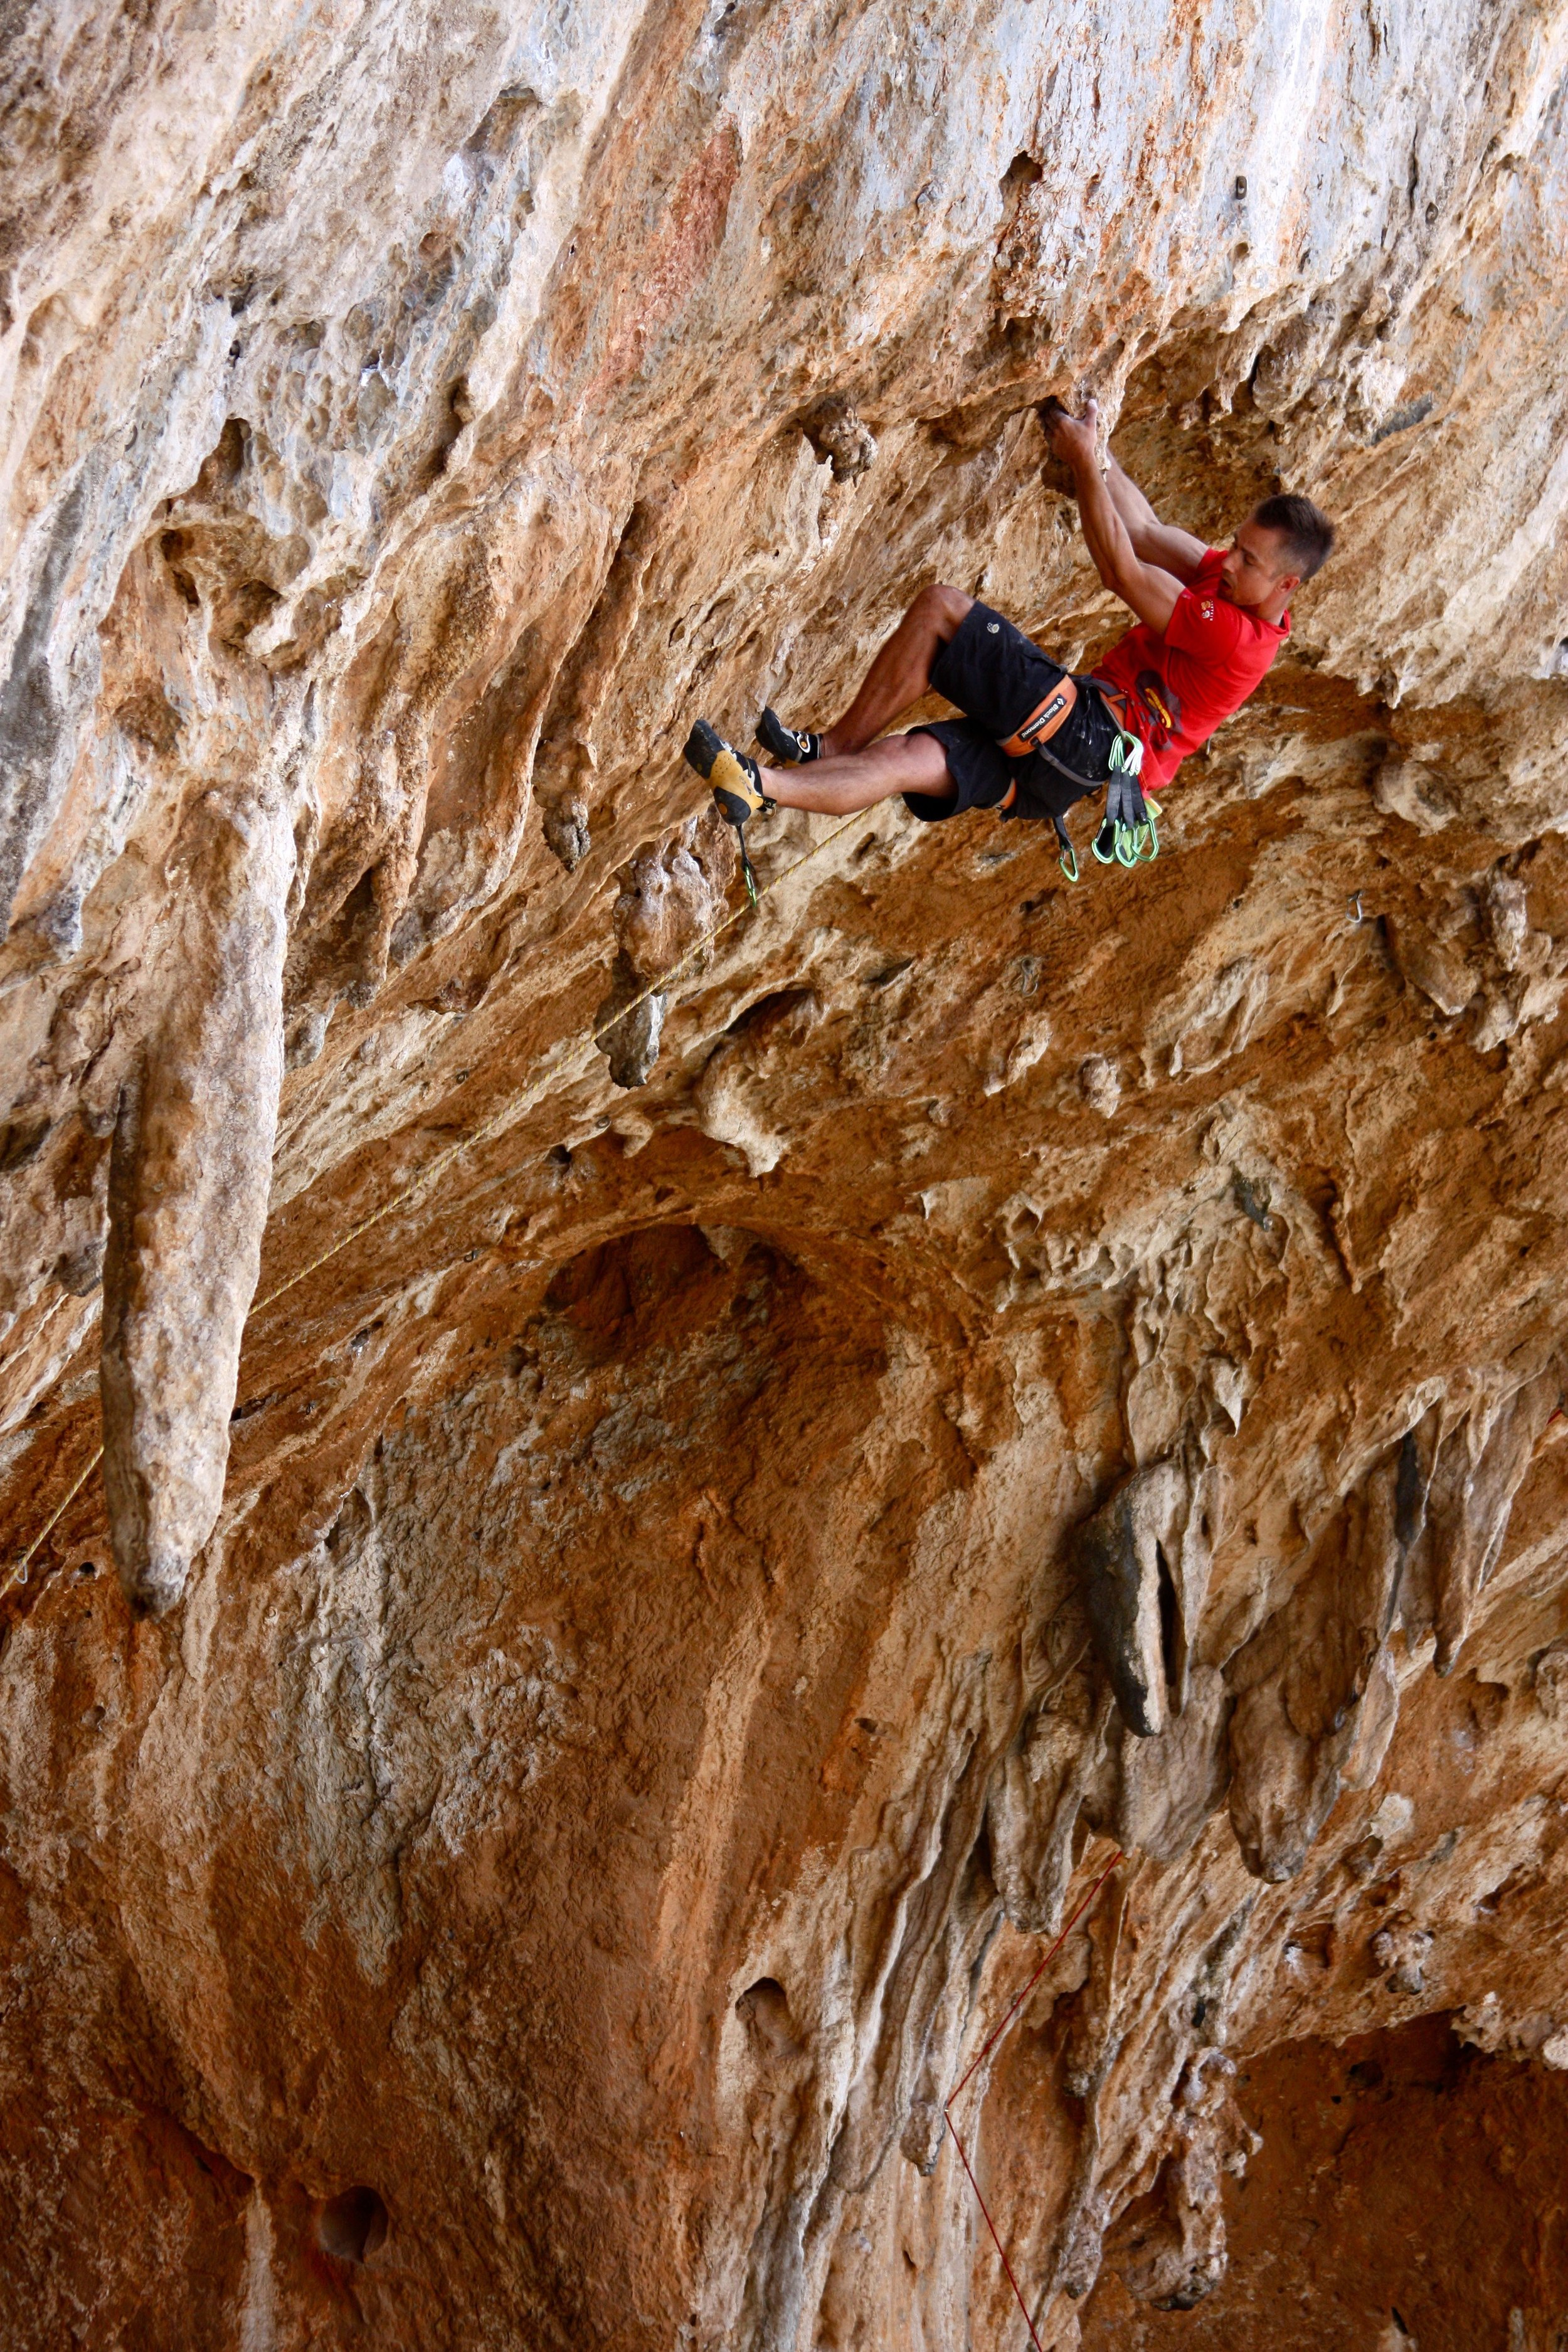 Raptor 7c+, Jurassic Park, Kalymnos  Photo: Simon Kincaid